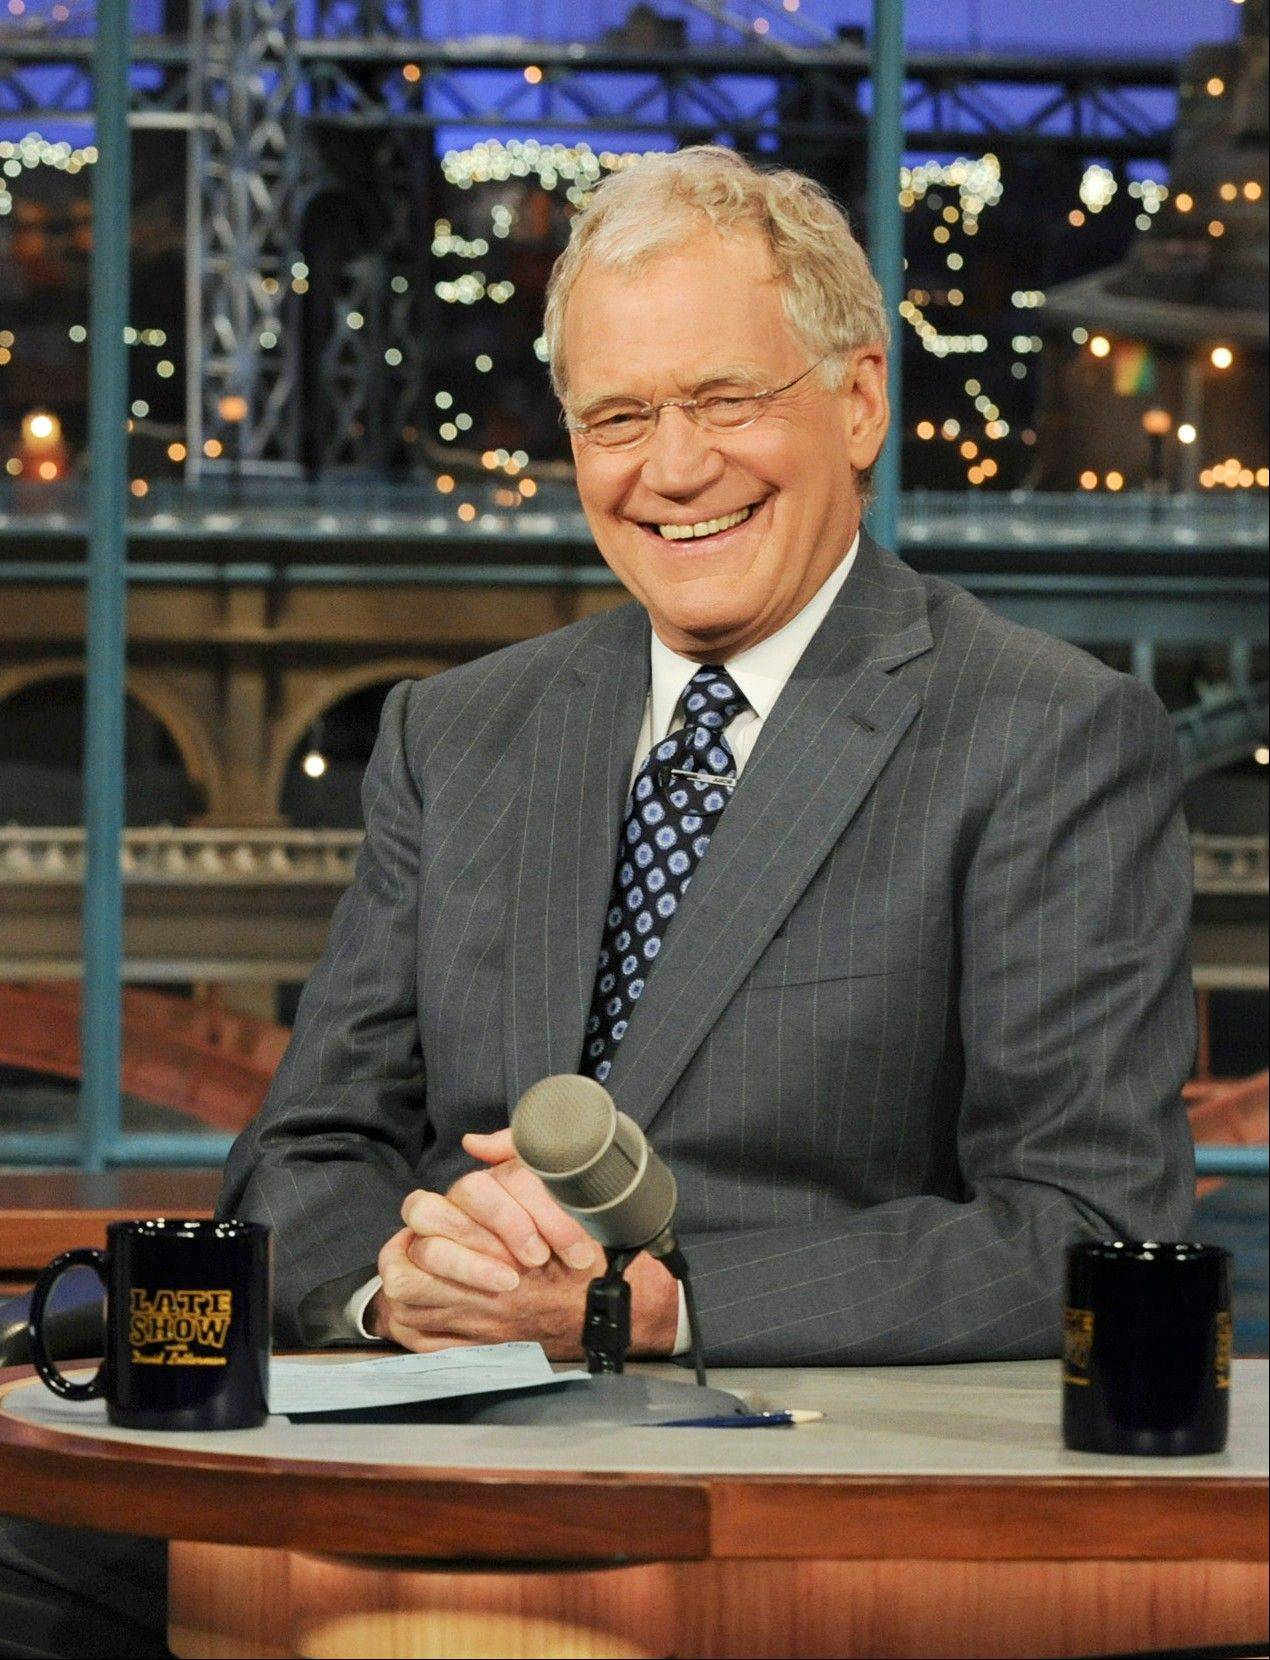 David Letterman returned to the �Late Show� Monday, two weeks after a threat against his life was posted on a website.